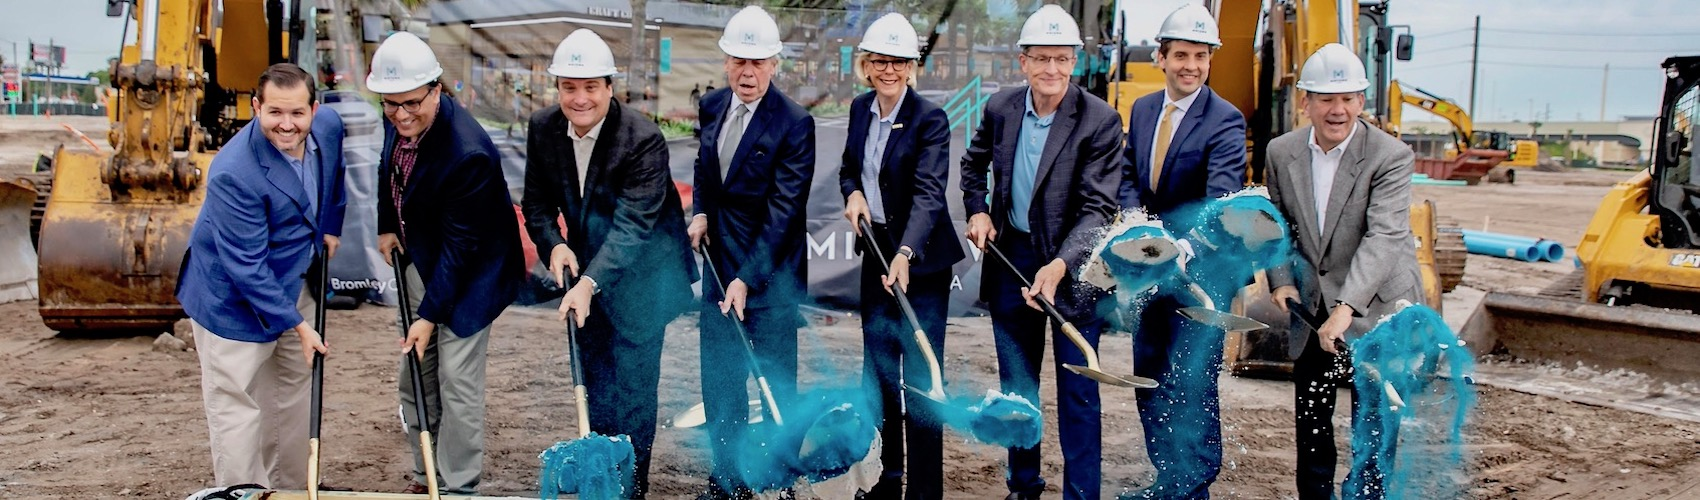 Local dignitaries led by Tampa Mayor Jane Castor break ground on Midtown development by Bromley Companies.